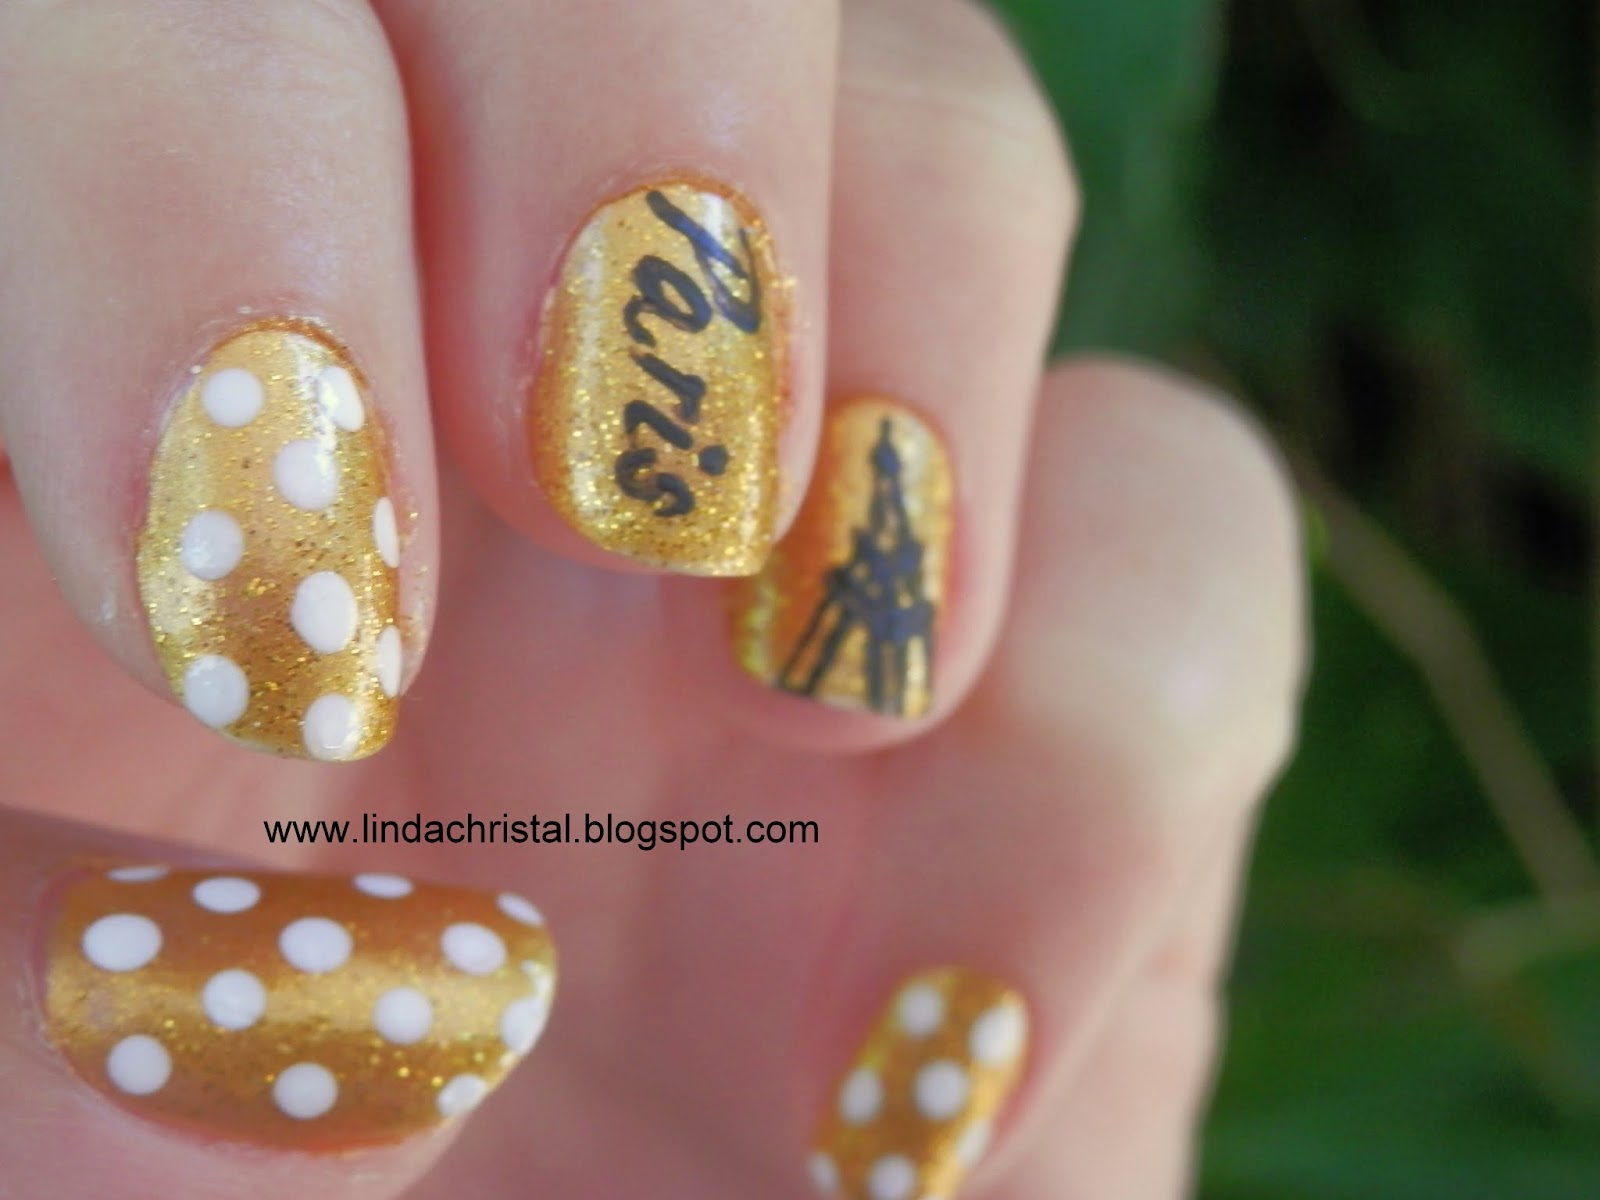 Crazy About Nails Jaime Paris Golden Paris Nails